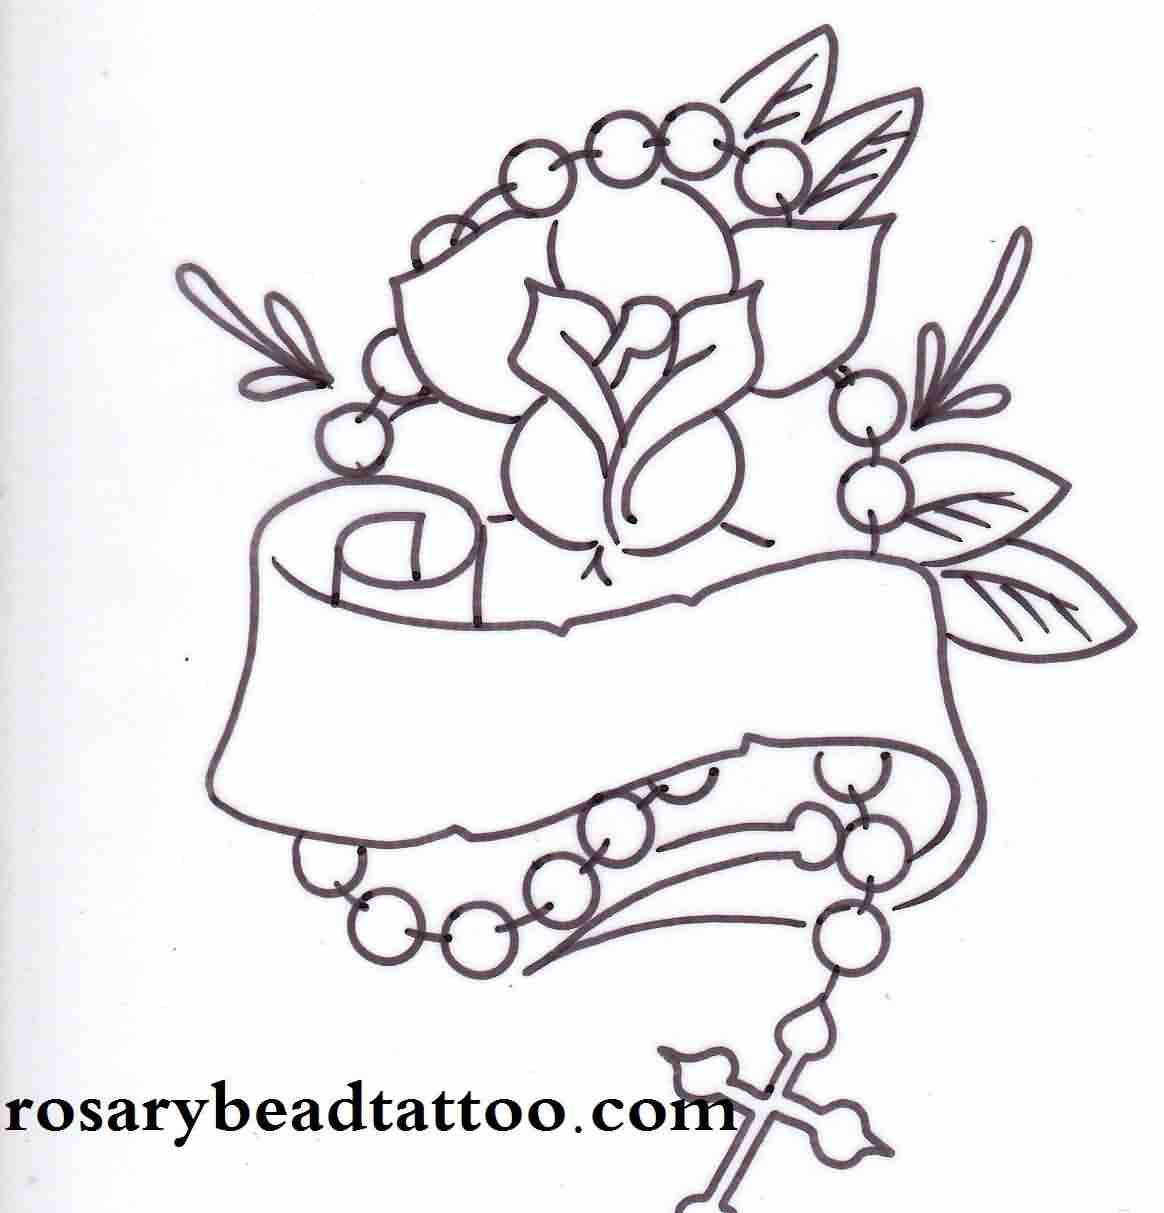 Rose Banner And Rosary Tattoo Sample